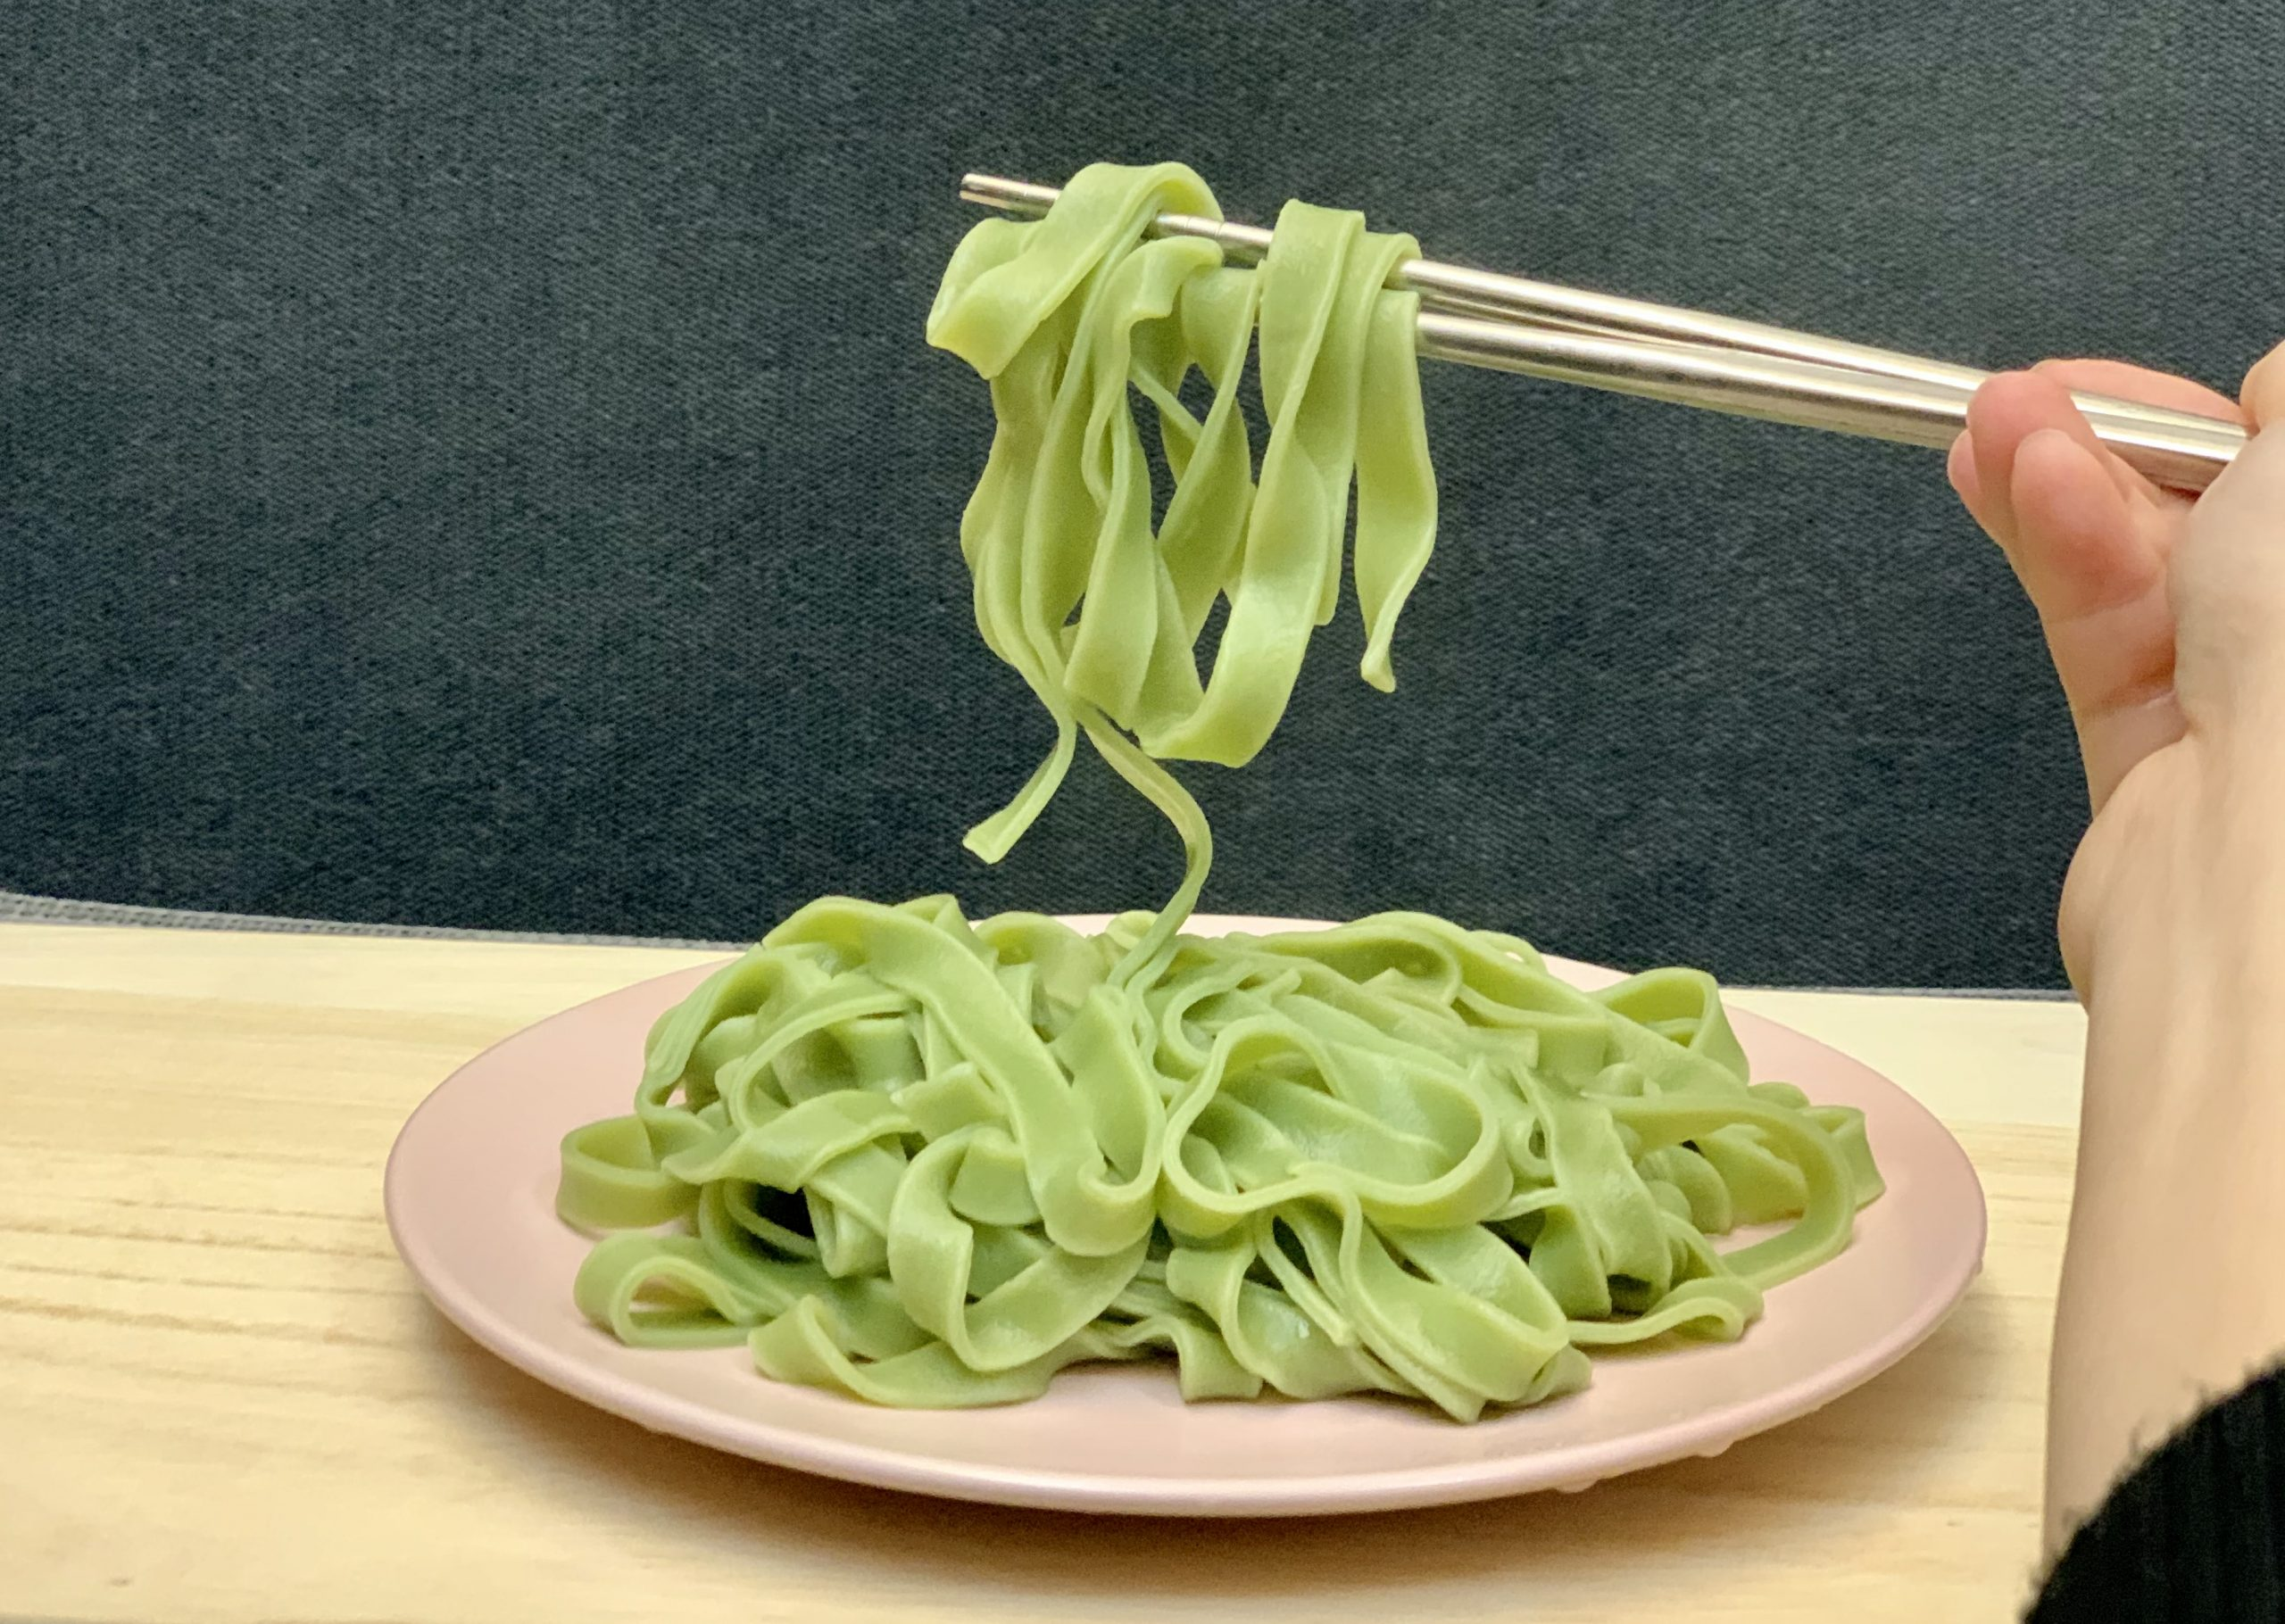 Spinach noodles4